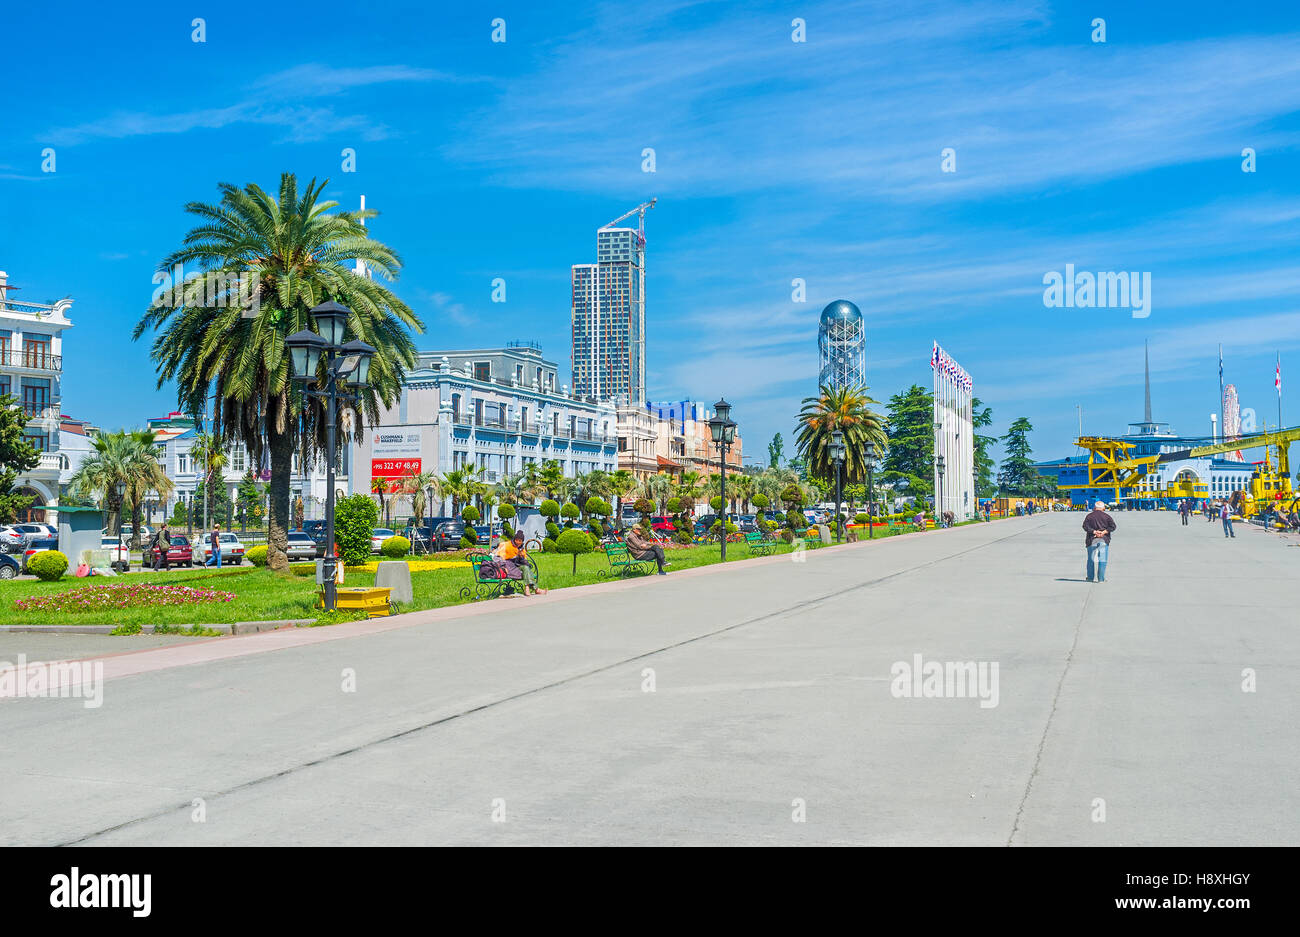 The seaside promenade with the beautiful French garden, decorated with flower beds, trimmed trees and lush palms - Stock Image